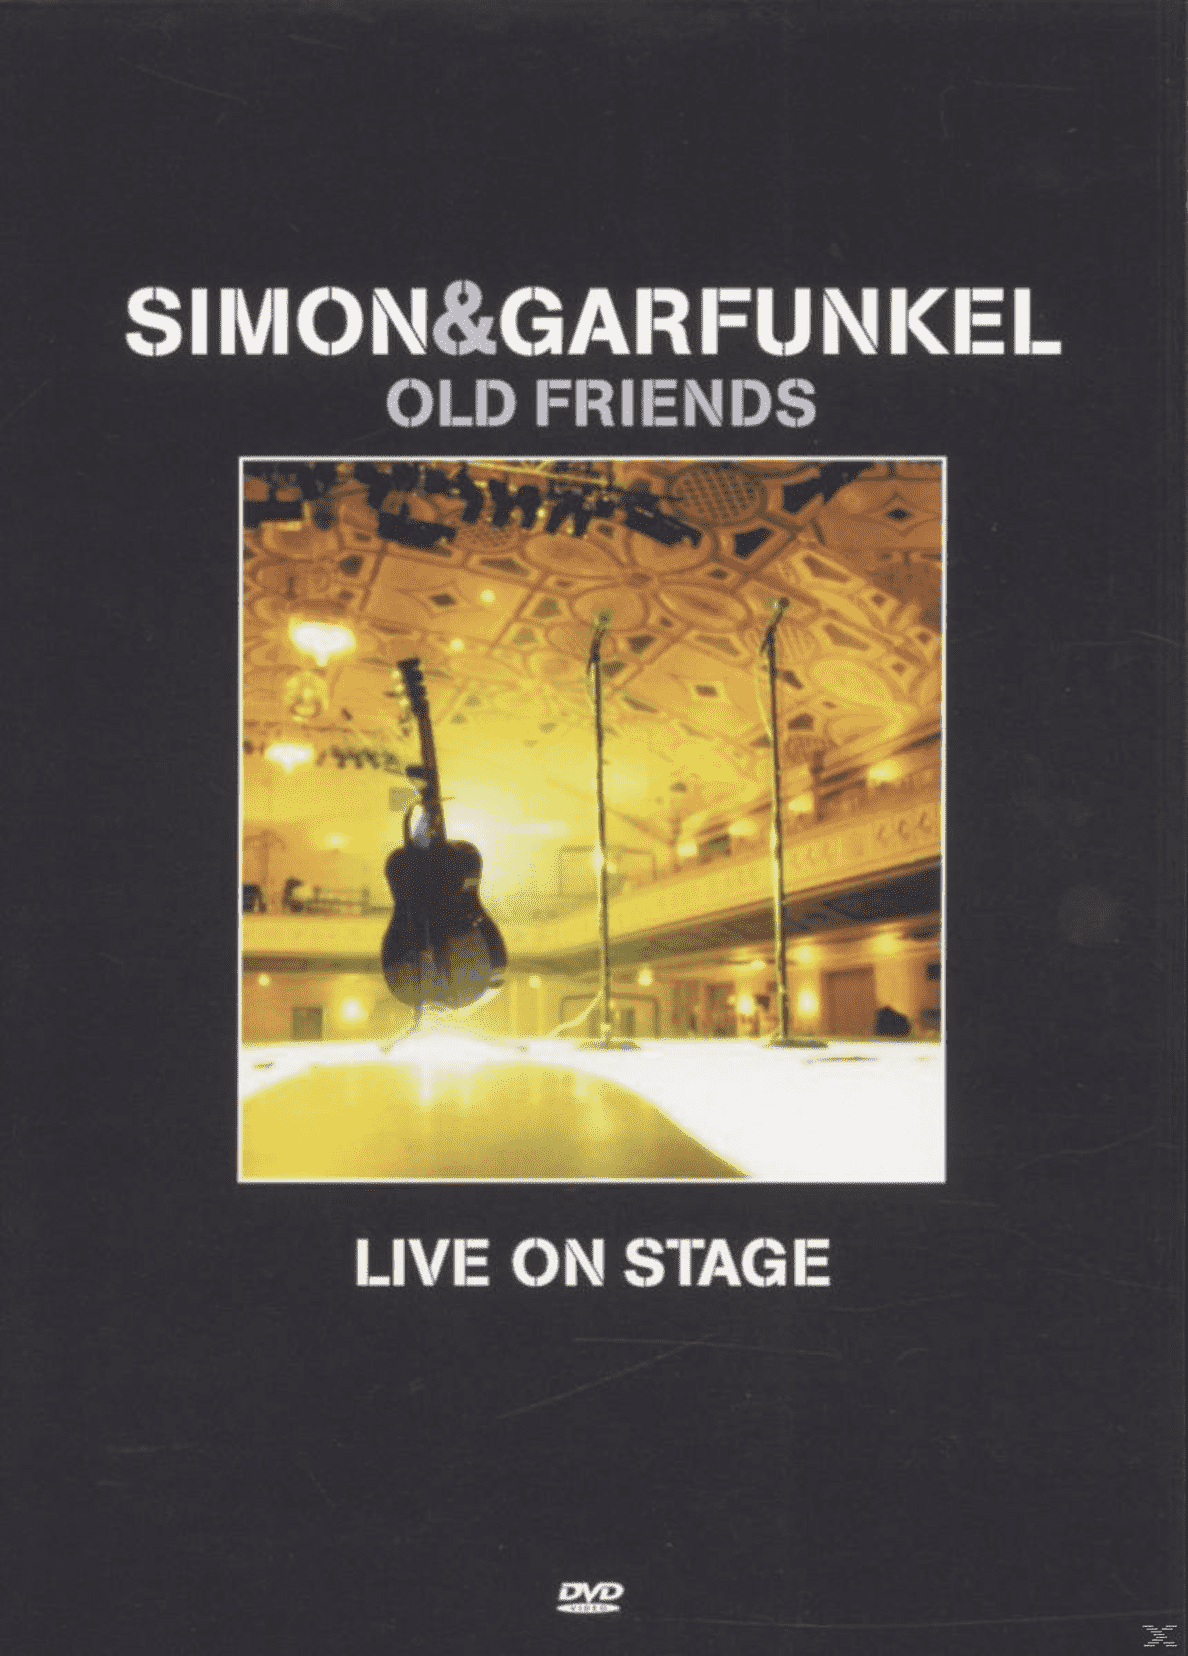 Simon & Garfunkel - OLD FRIENDS-LIVE ON STAGE - (DVD)